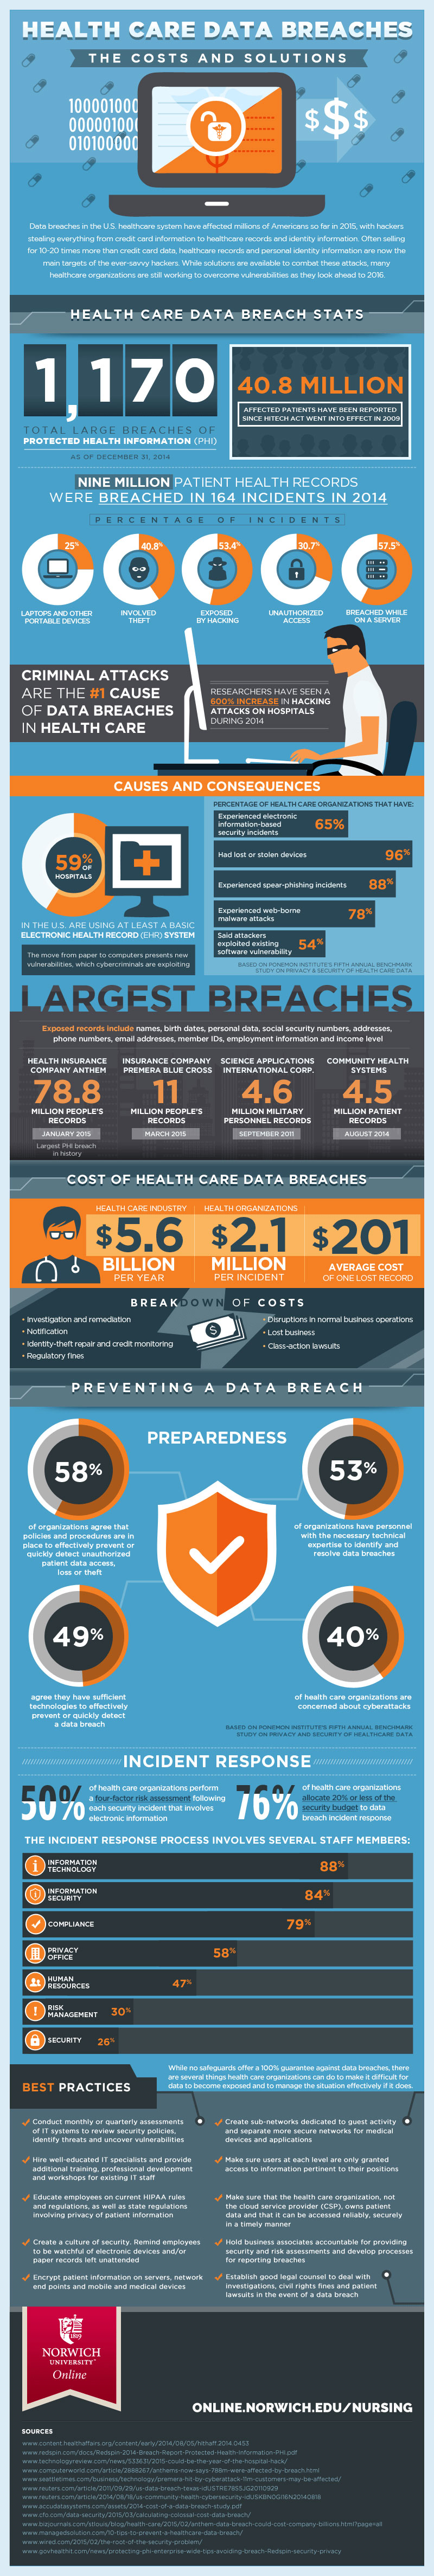 infographic on data breaches in health care